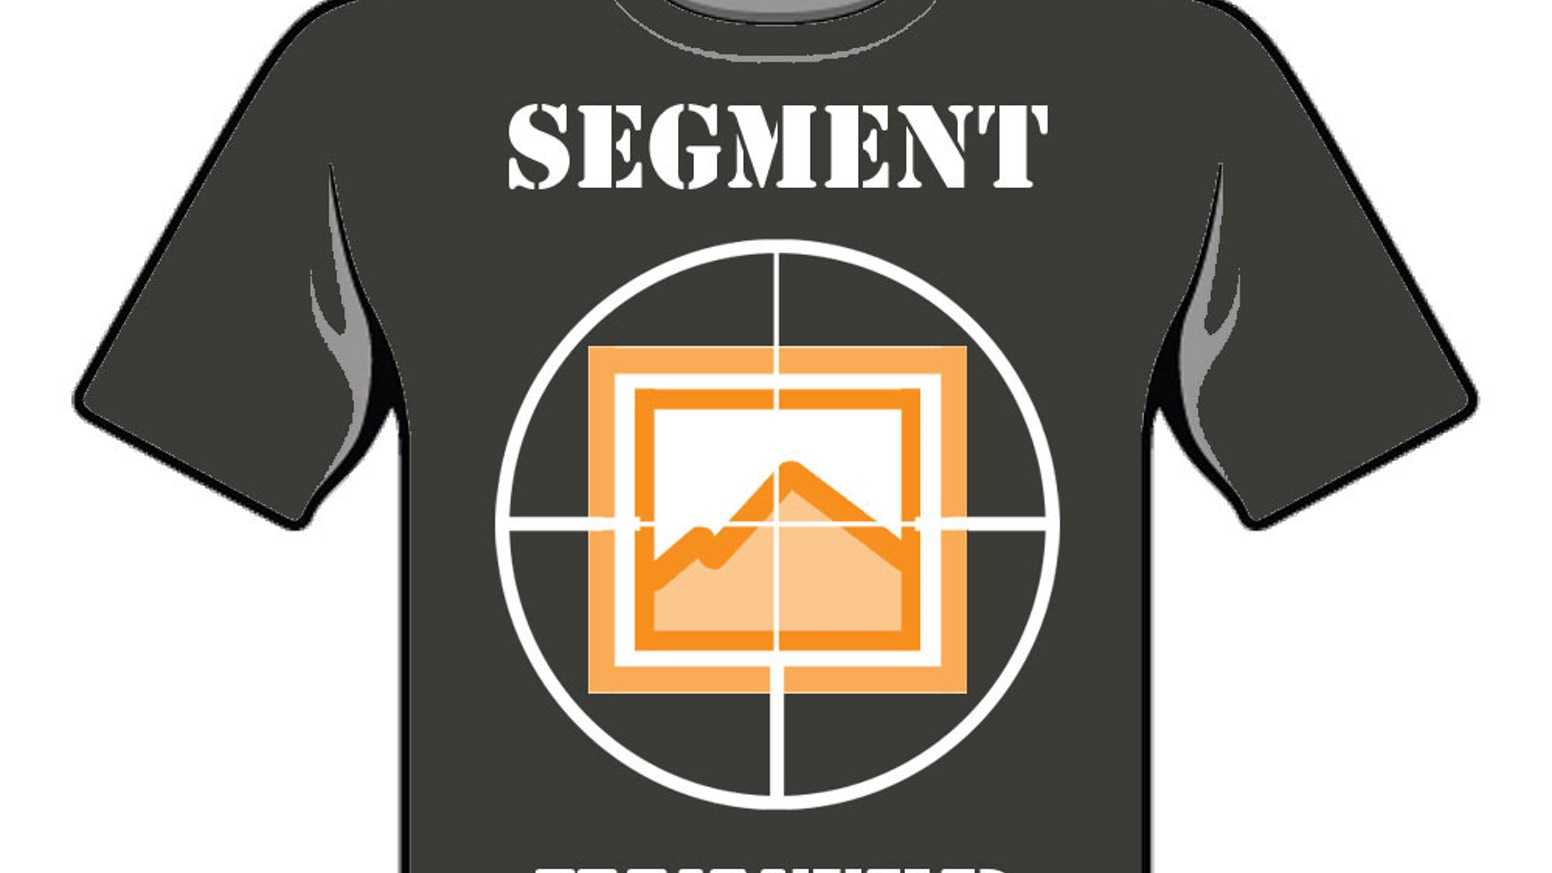 Segment Hunter Cycling T Shirt and Apparel for Men and Women by Eric ... 45bf27a0e